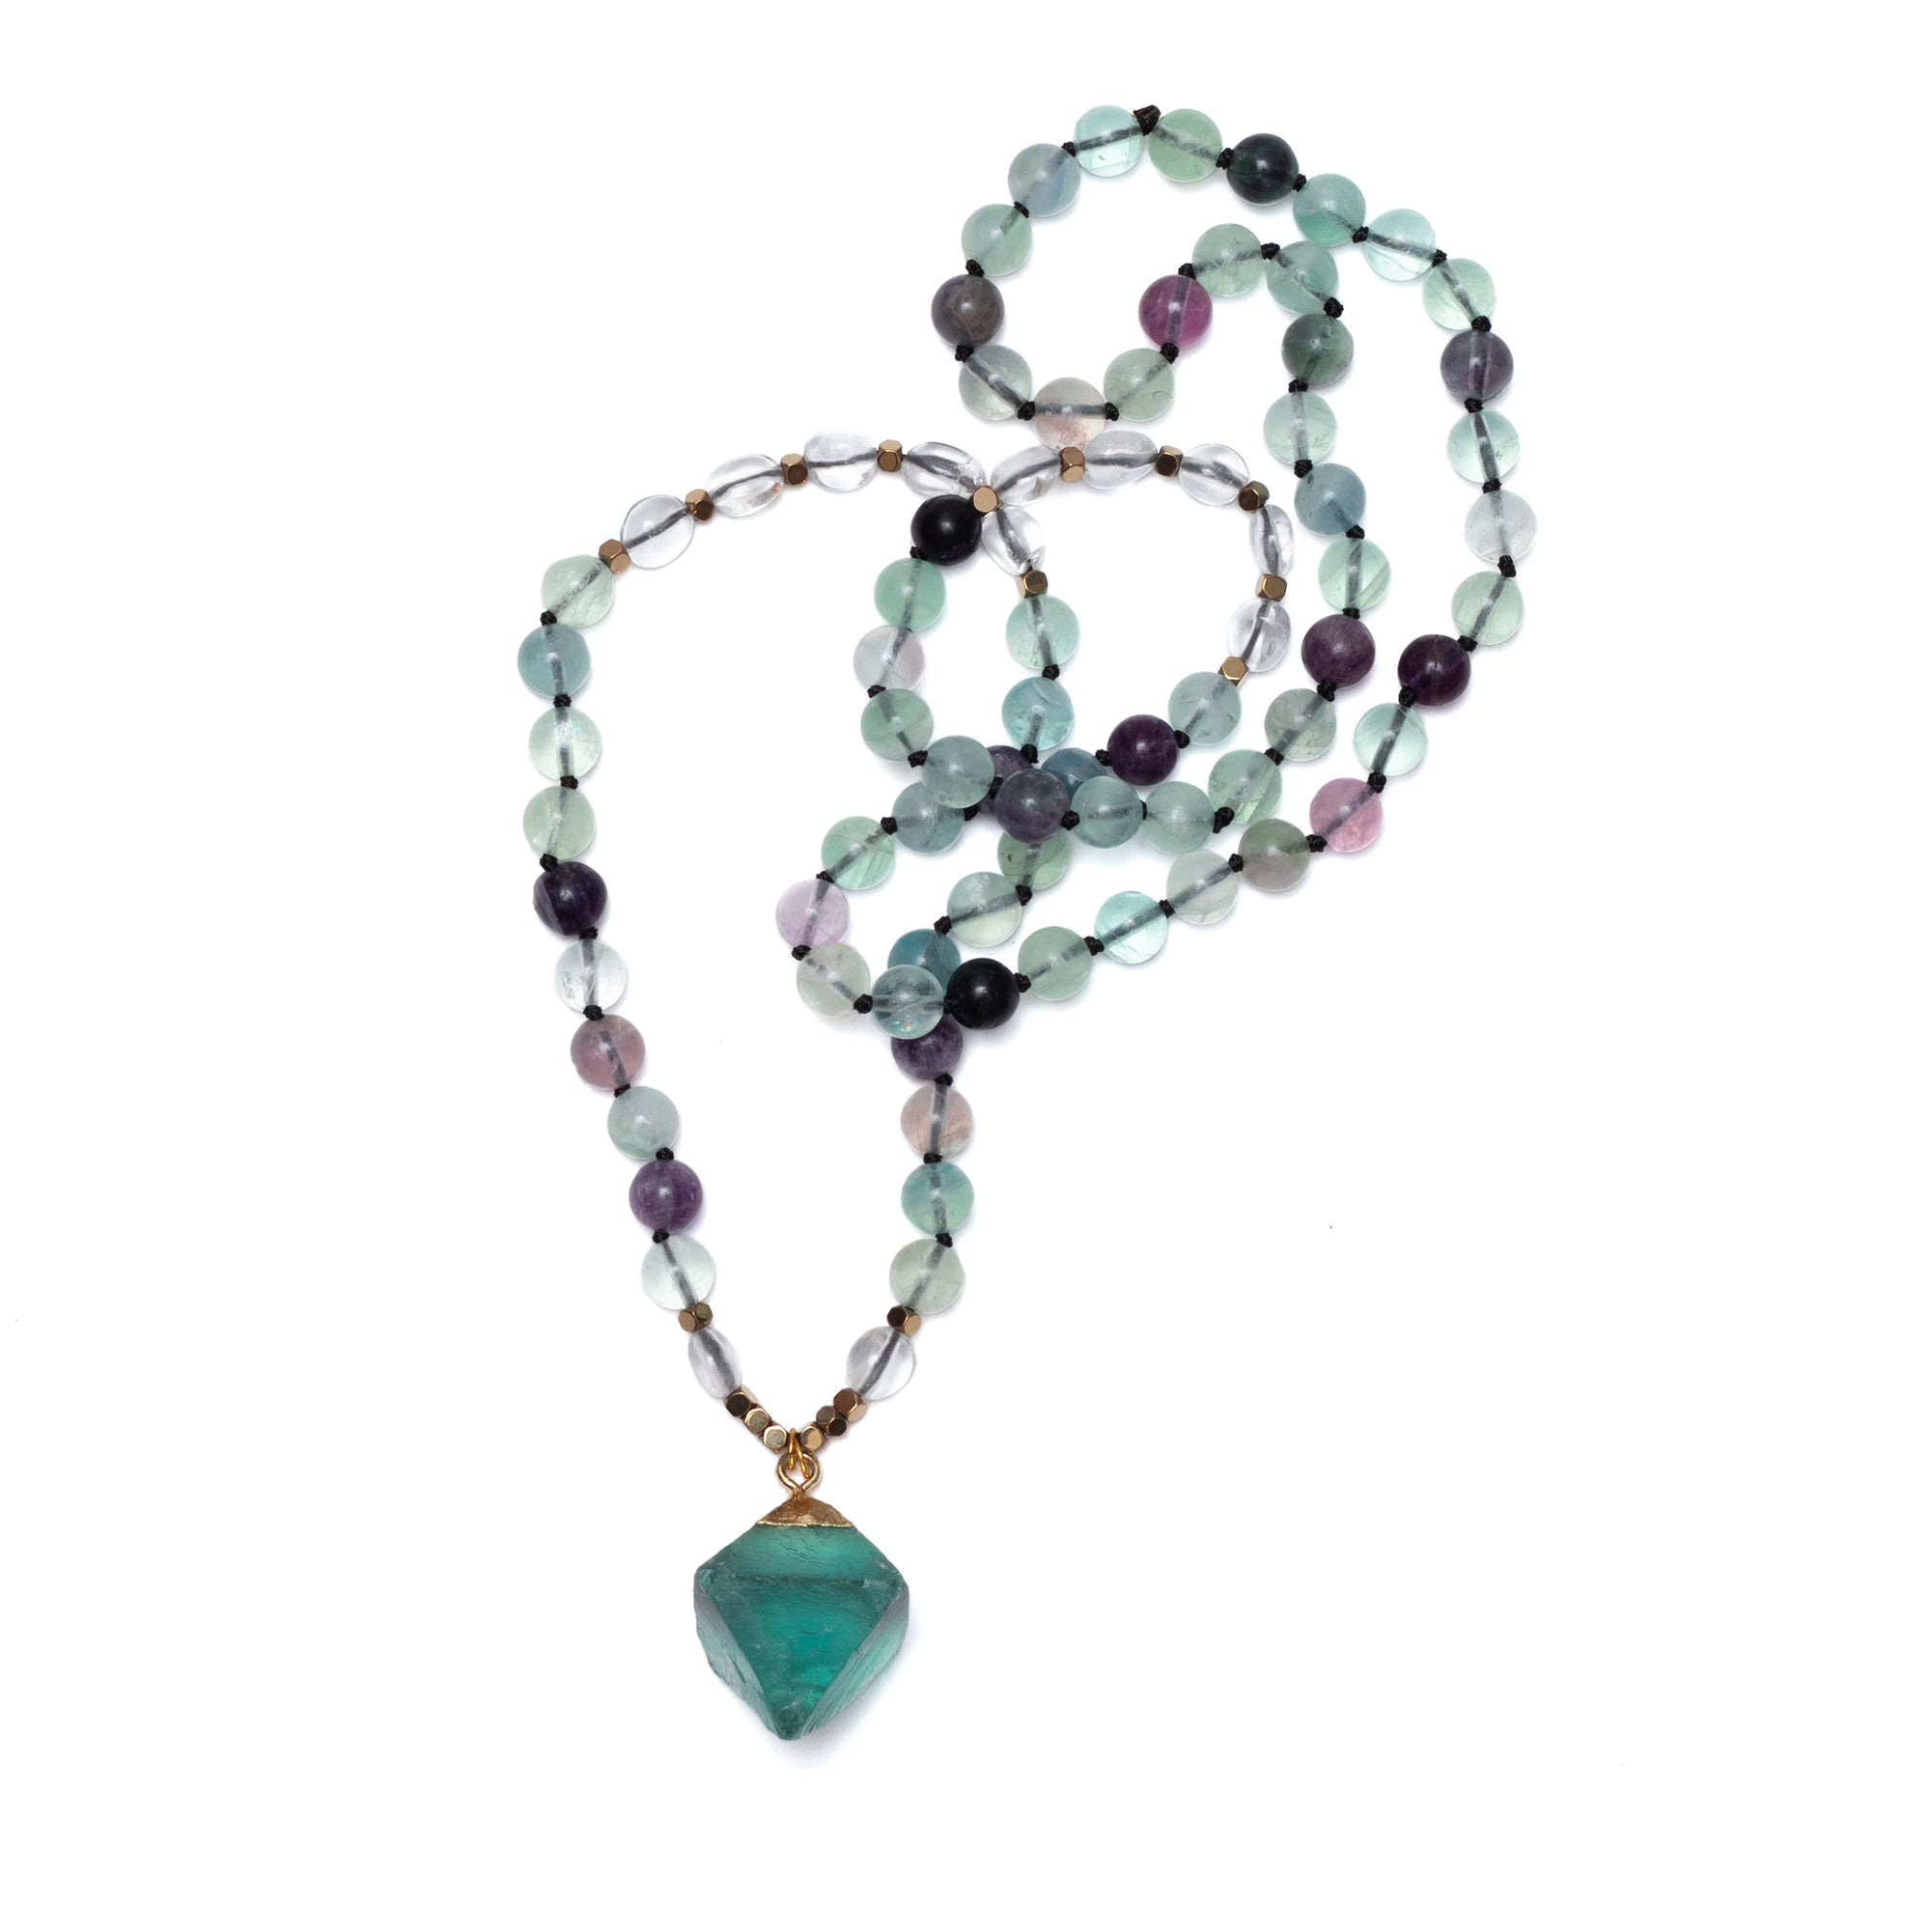 Fluorite Tetrahedron necklace  length 32""